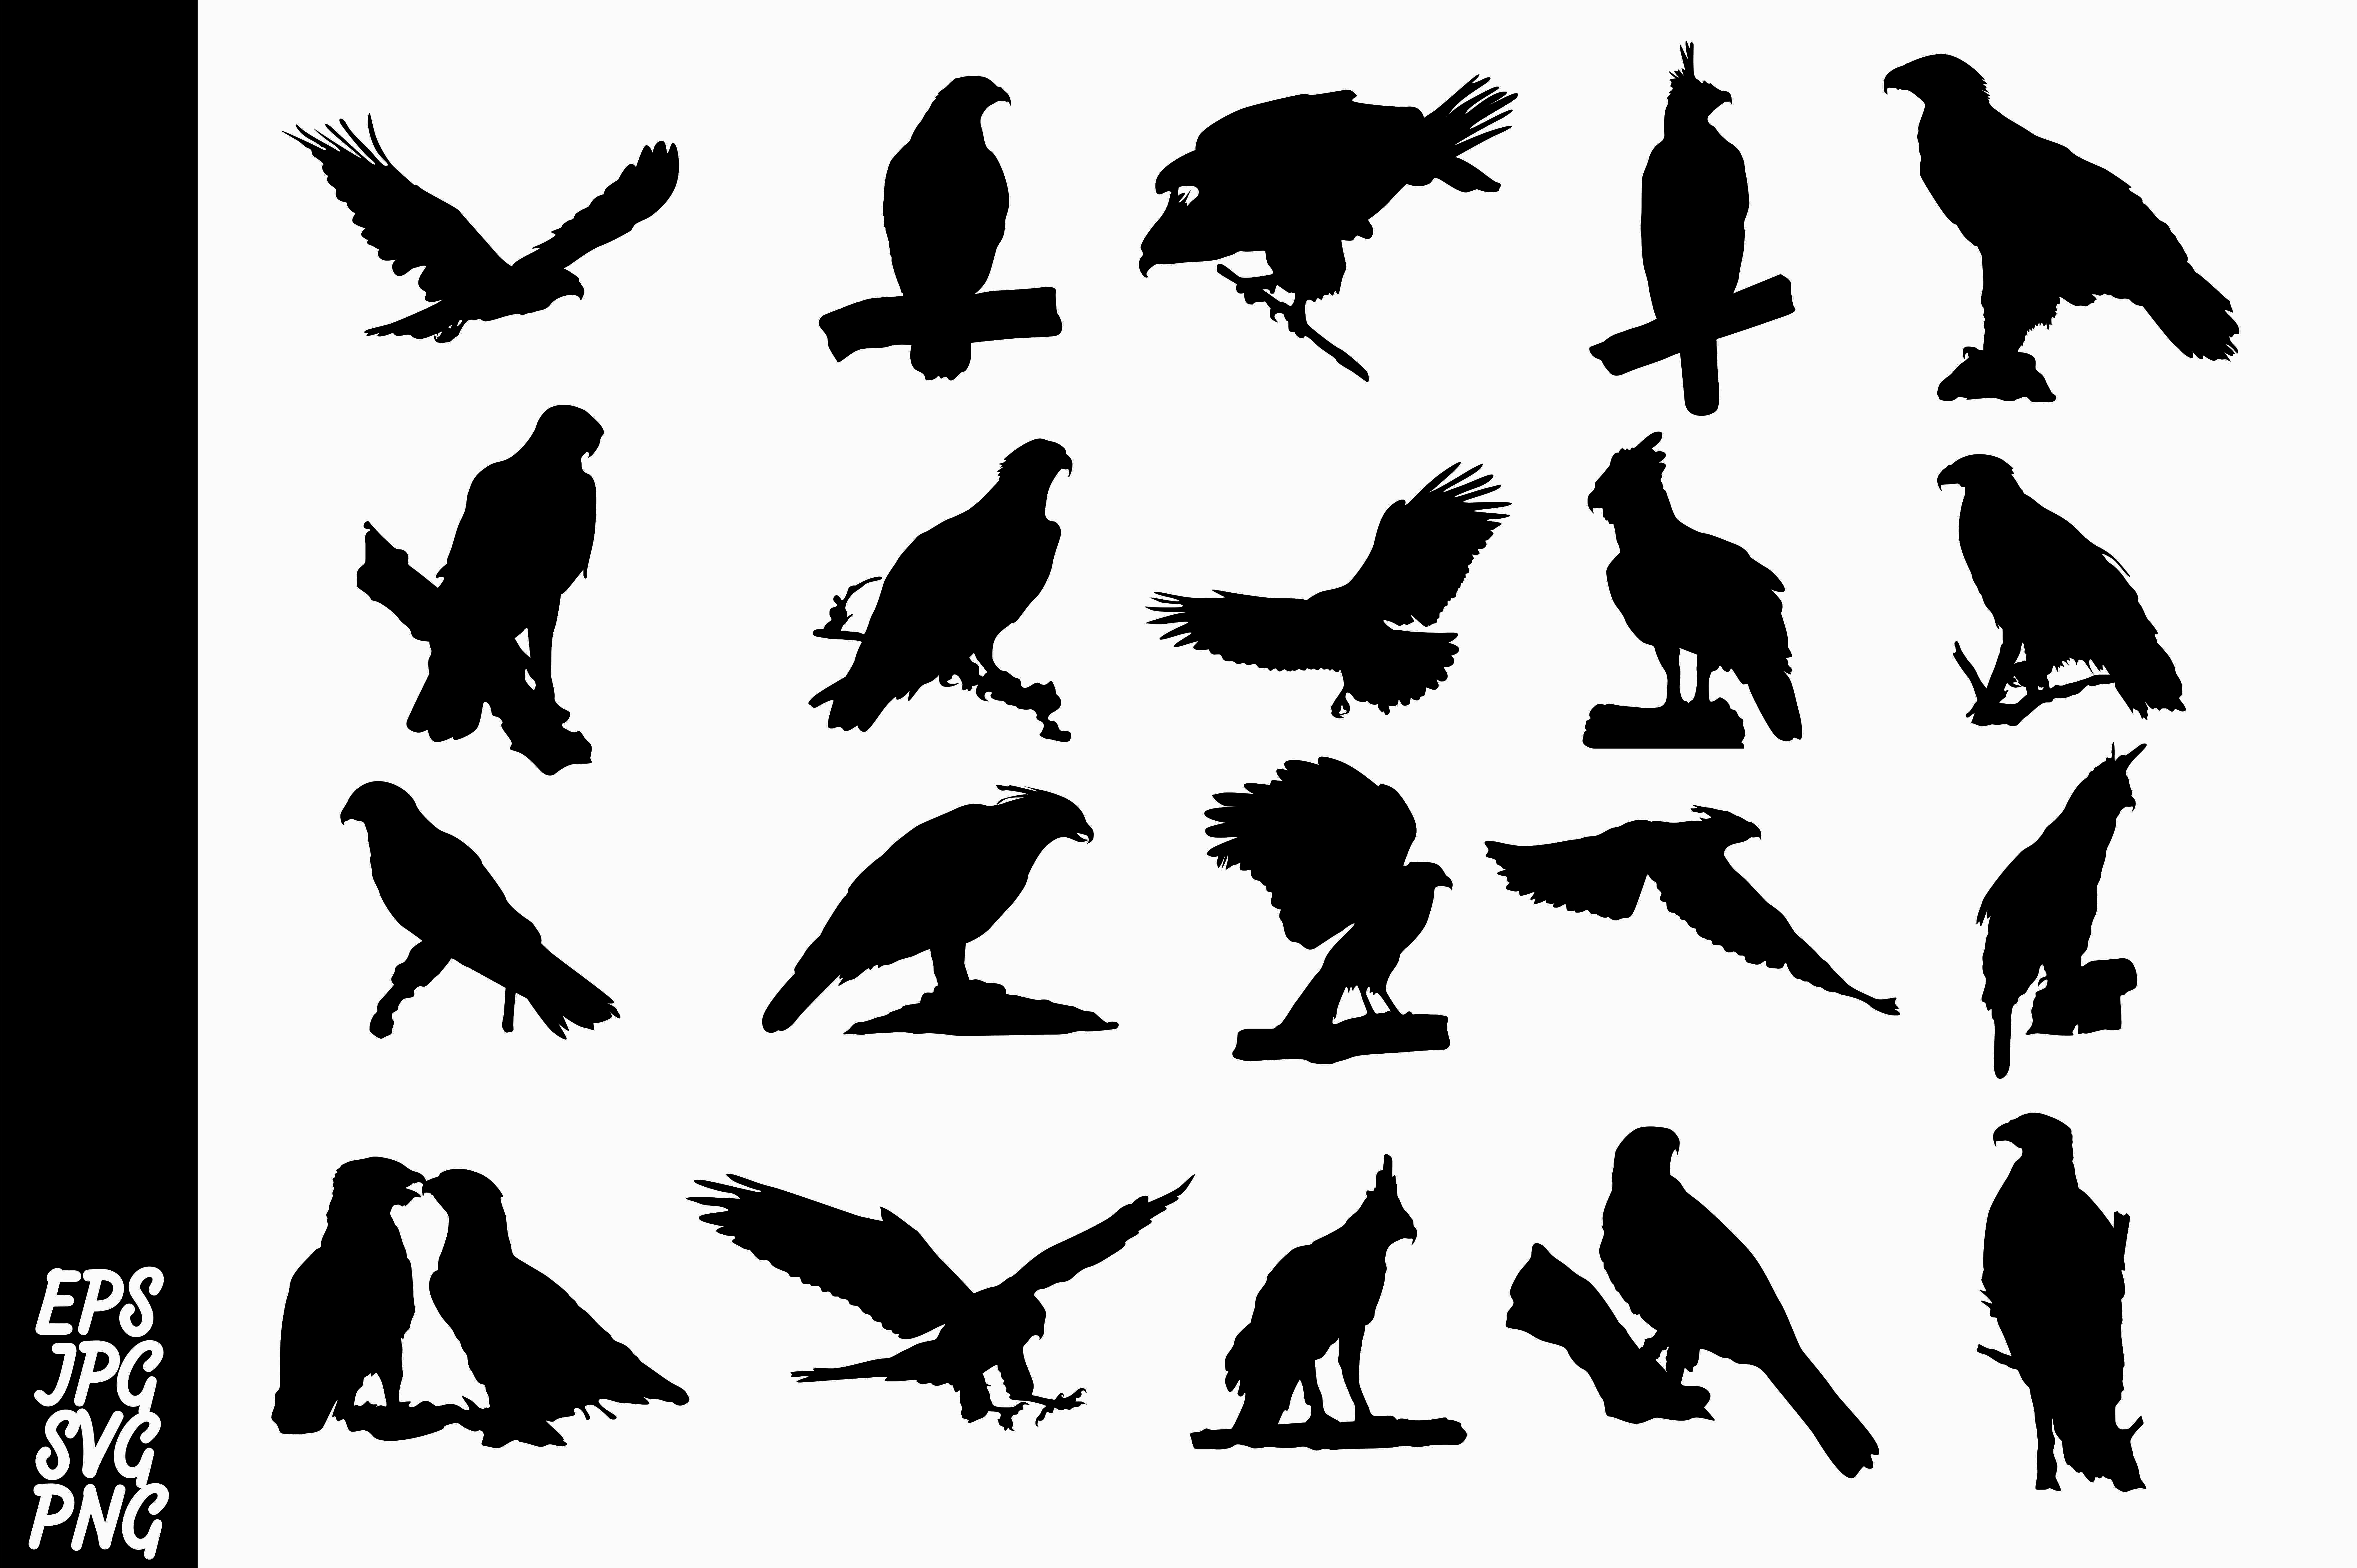 Download Free 20 Silhouette Eagle Vector Bundle Graphic By Arief Sapta Adjie for Cricut Explore, Silhouette and other cutting machines.